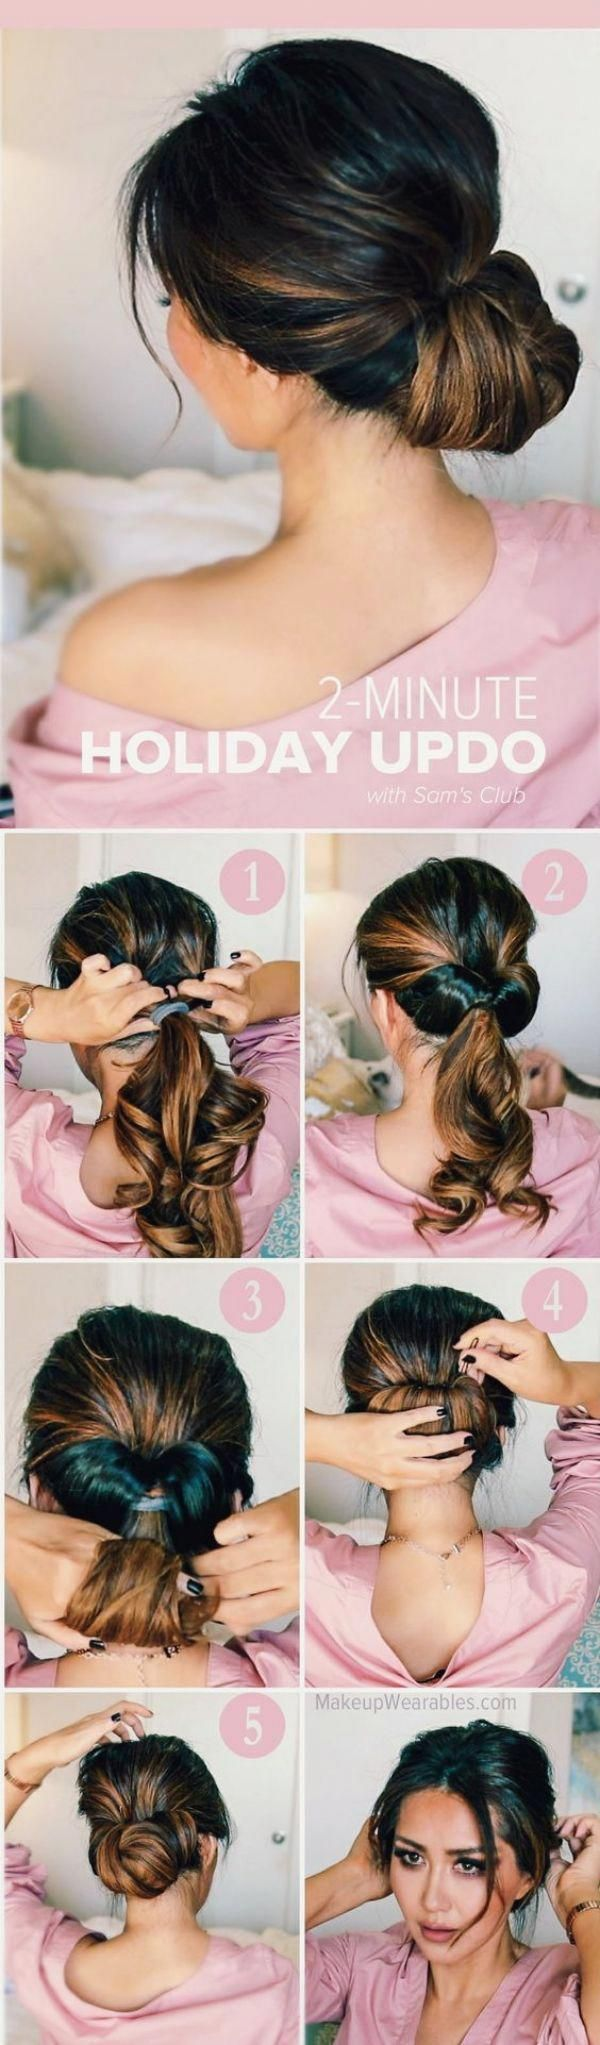 2 MINUTEN UPDO HAIRSTYLE #easyhairstyles